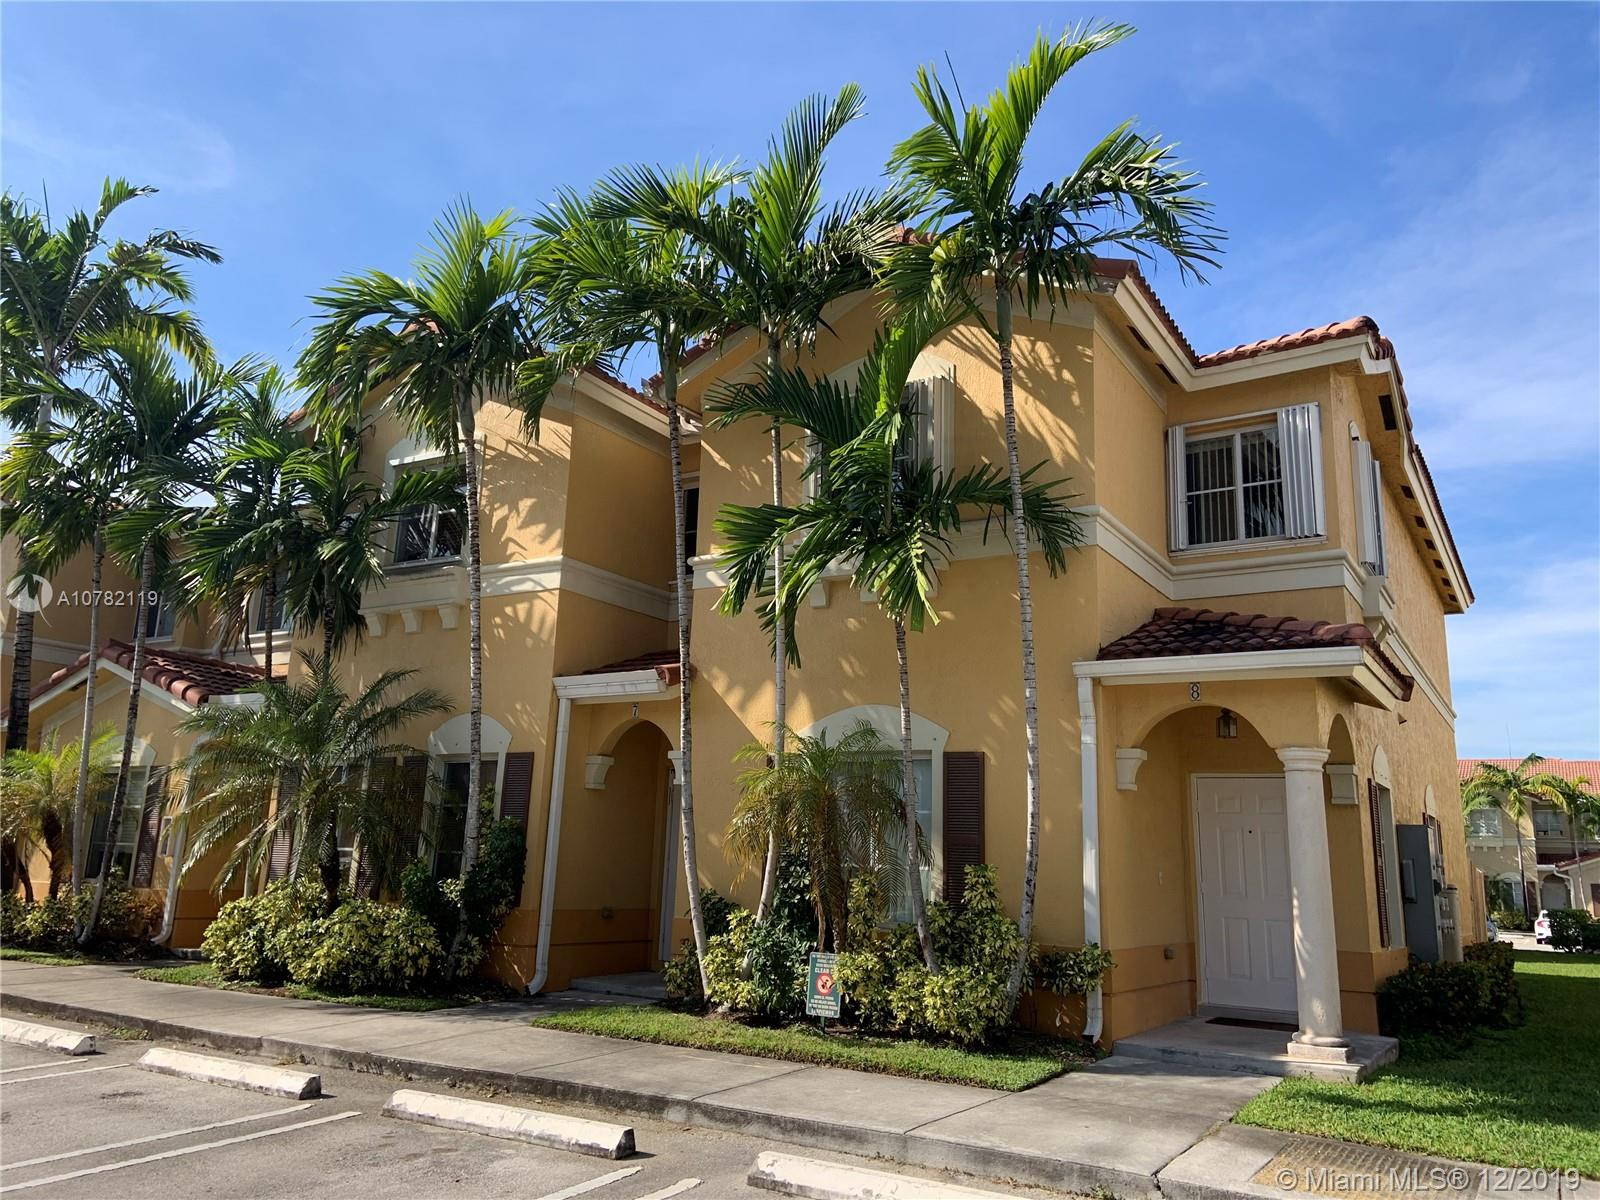 8242 NW 107th Ct #8-12 For Sale A10782119, FL